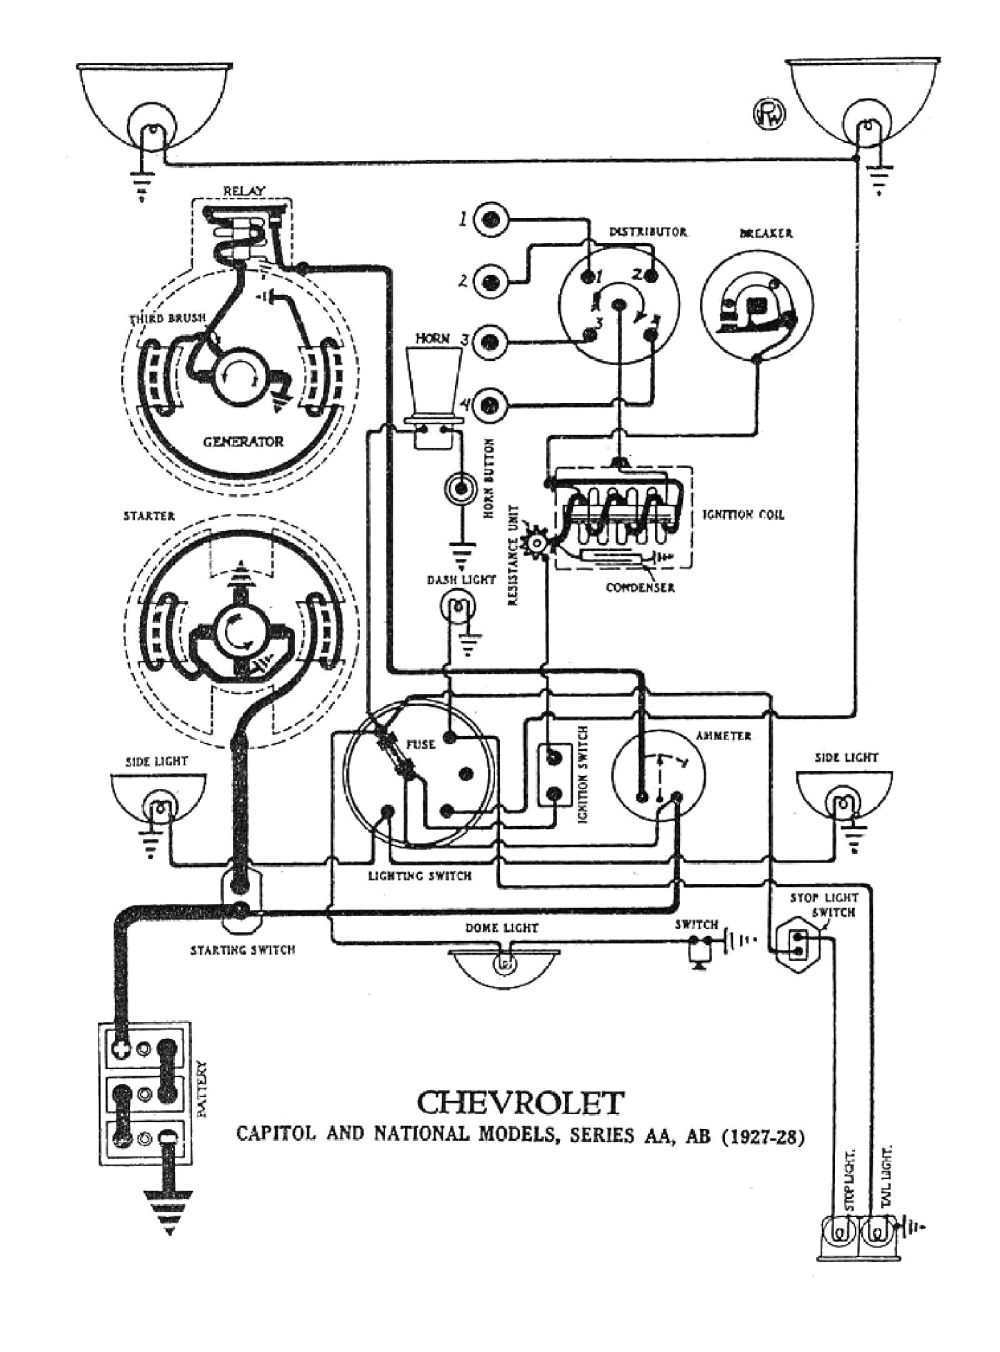 medium resolution of 1946 oldsmobile wiring diagram wiring diagram centre charging circuit diagram for the 1946 48 oldsmobile automaticchevy